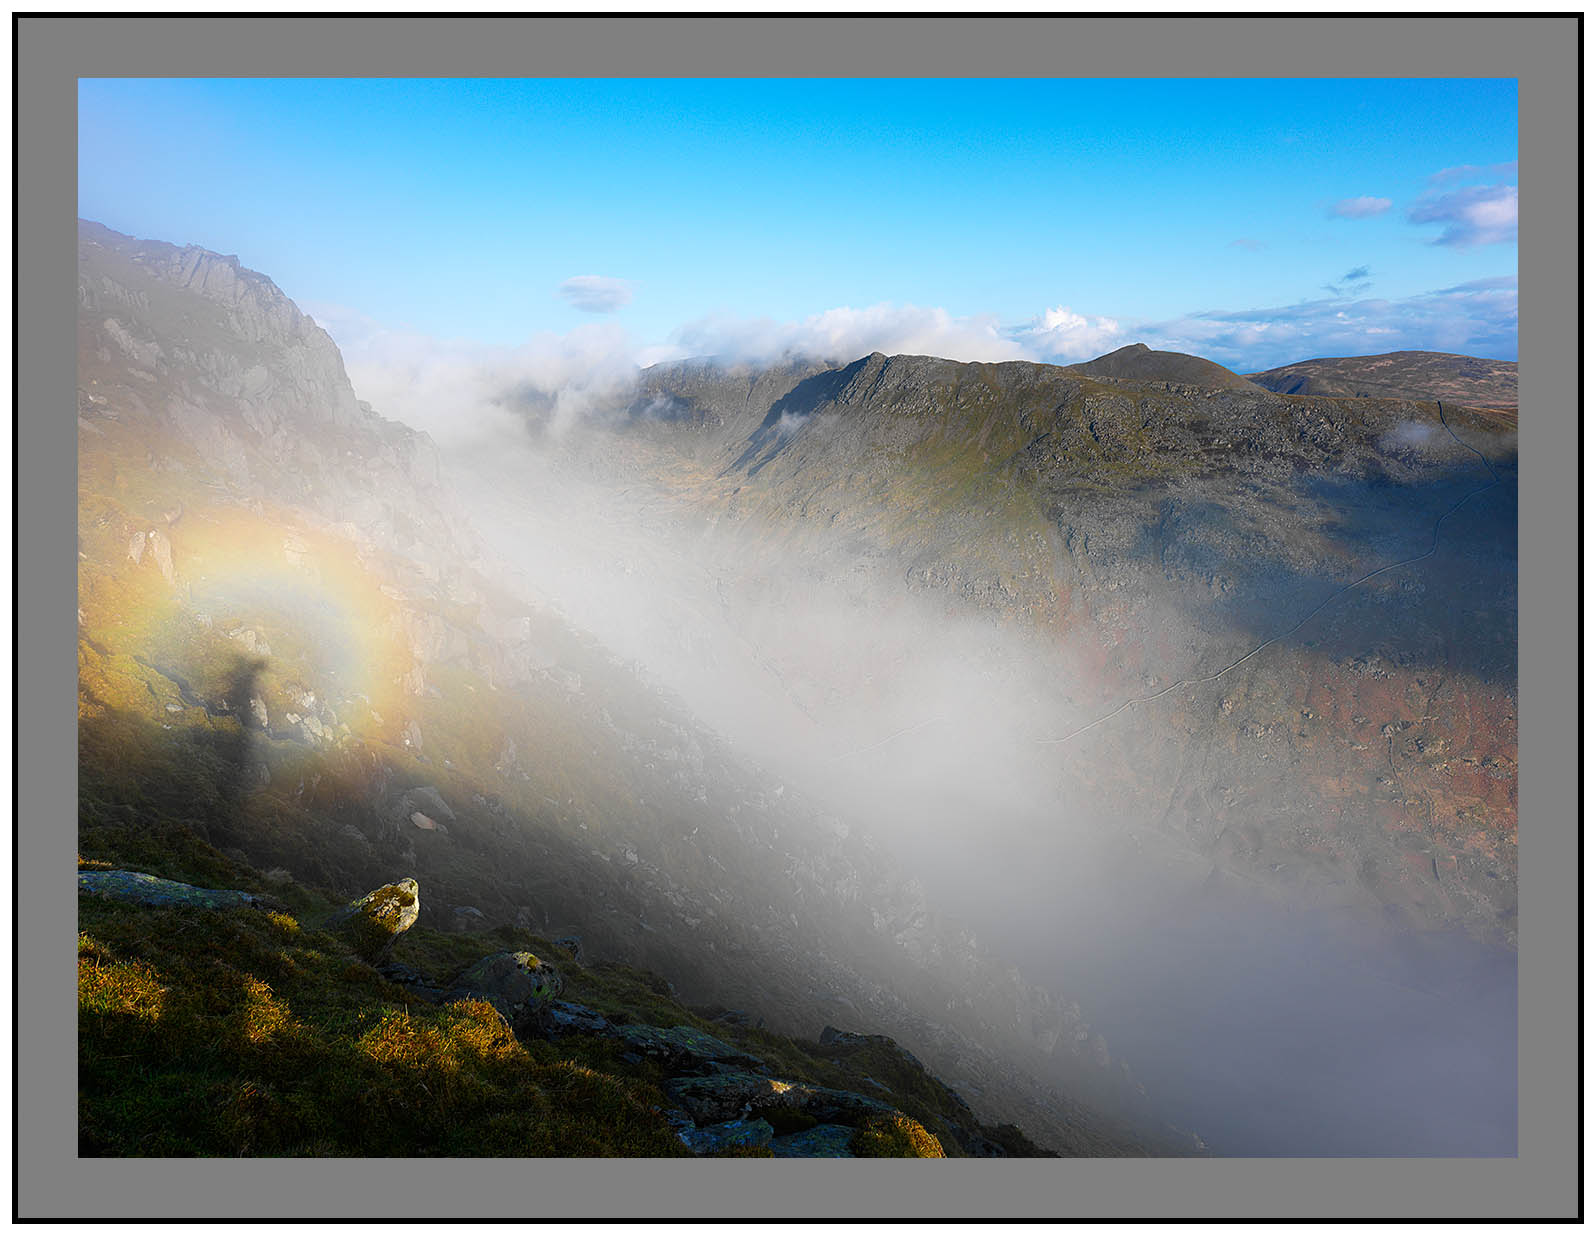 A 3022 Brocken spectre on St Sunday Crag